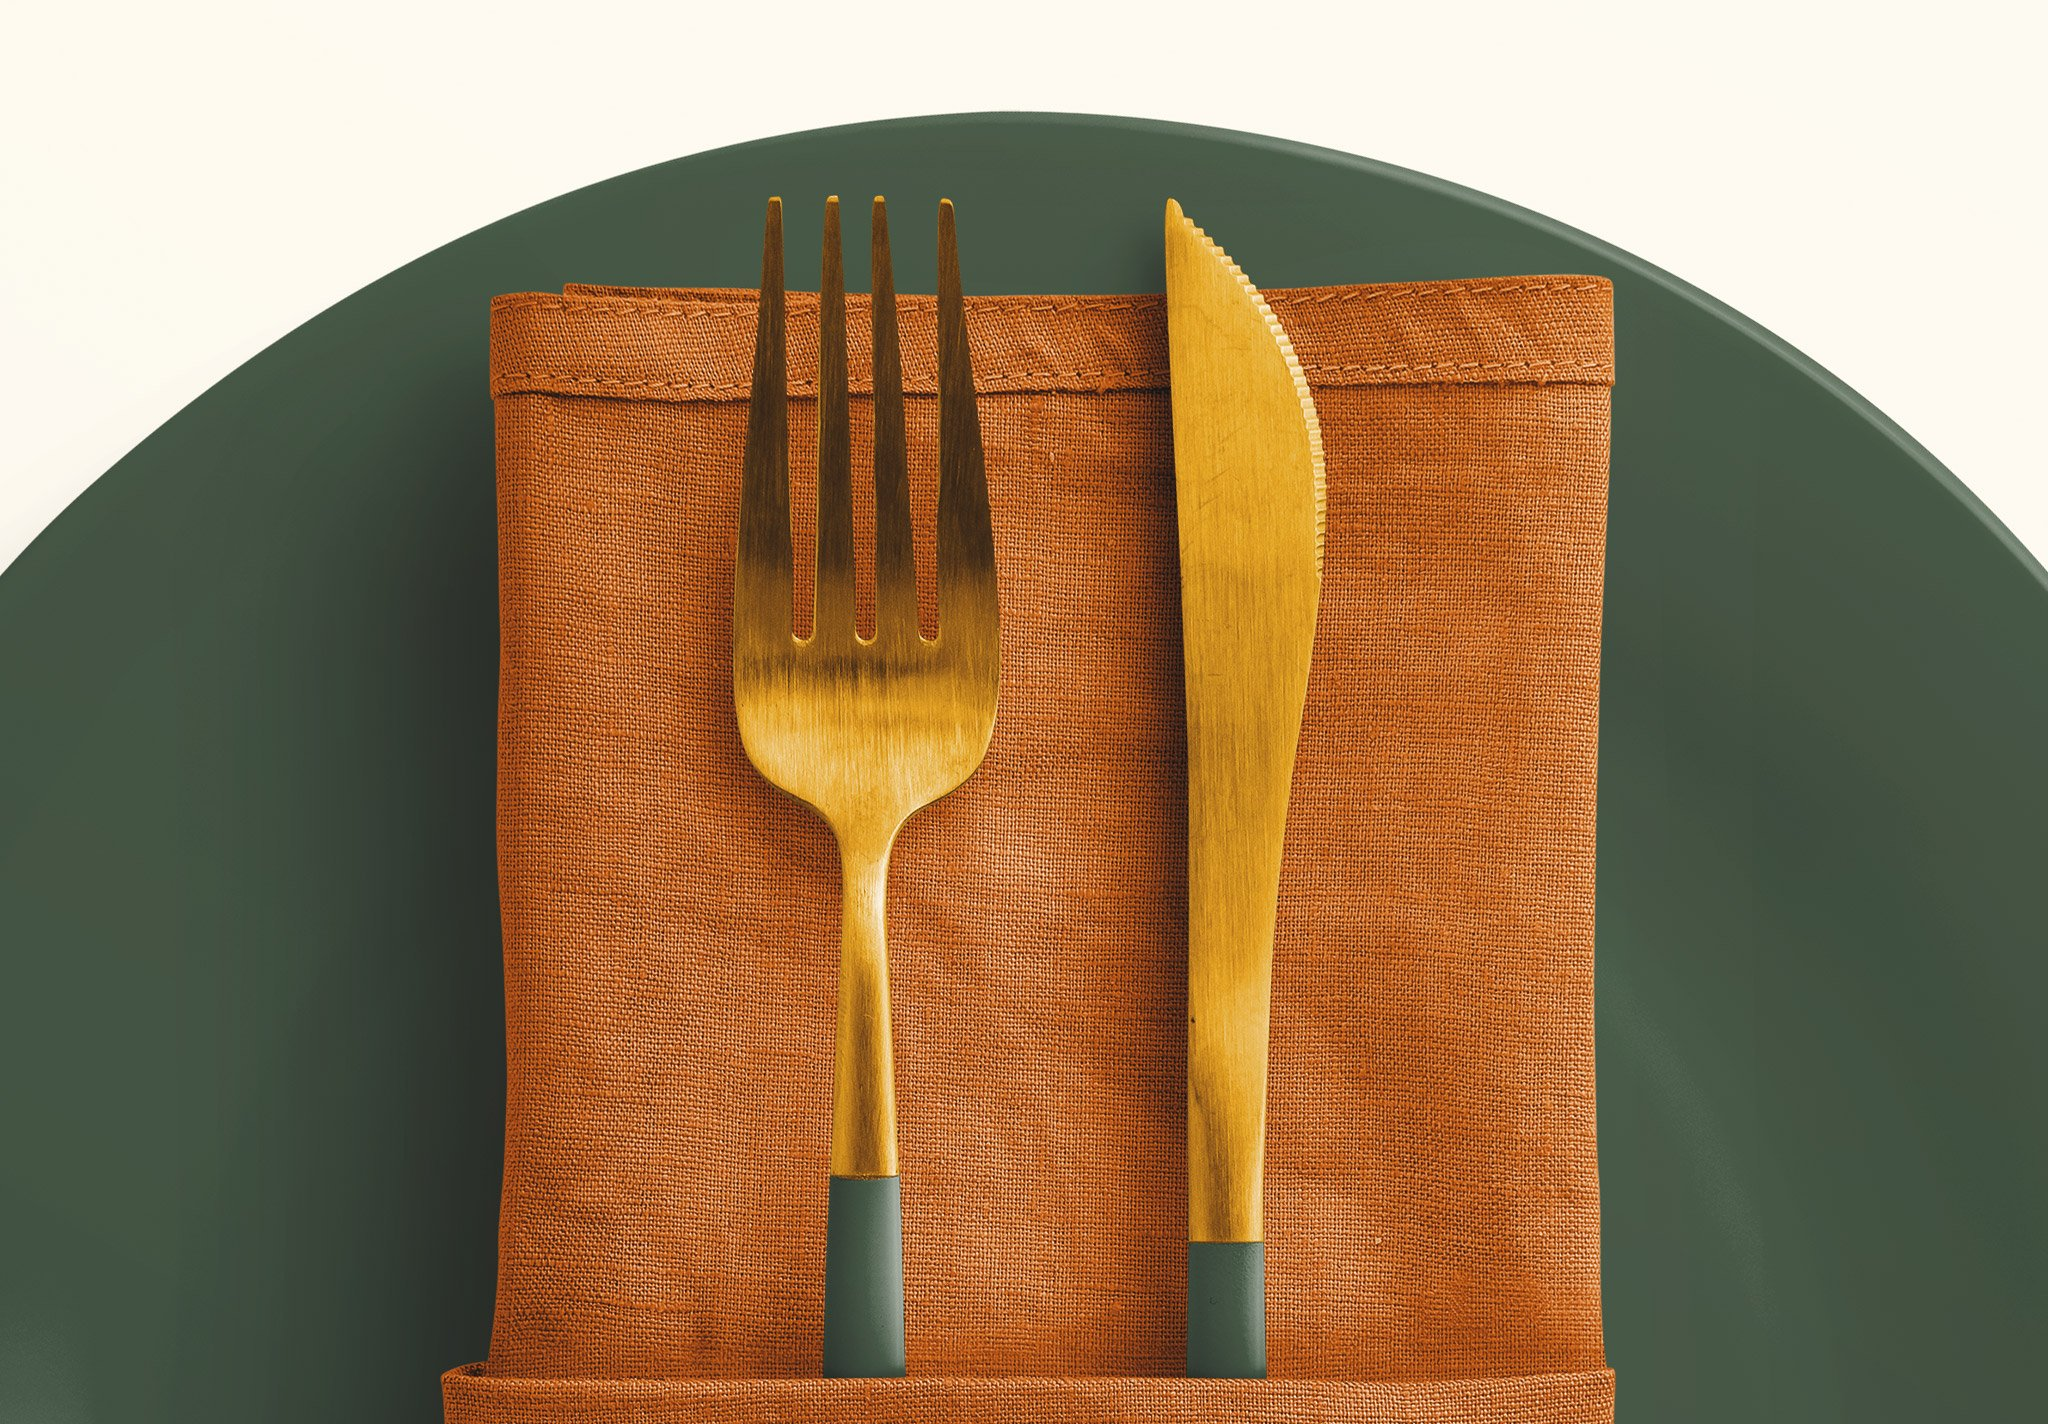 table set plate mockup and cutlery image04